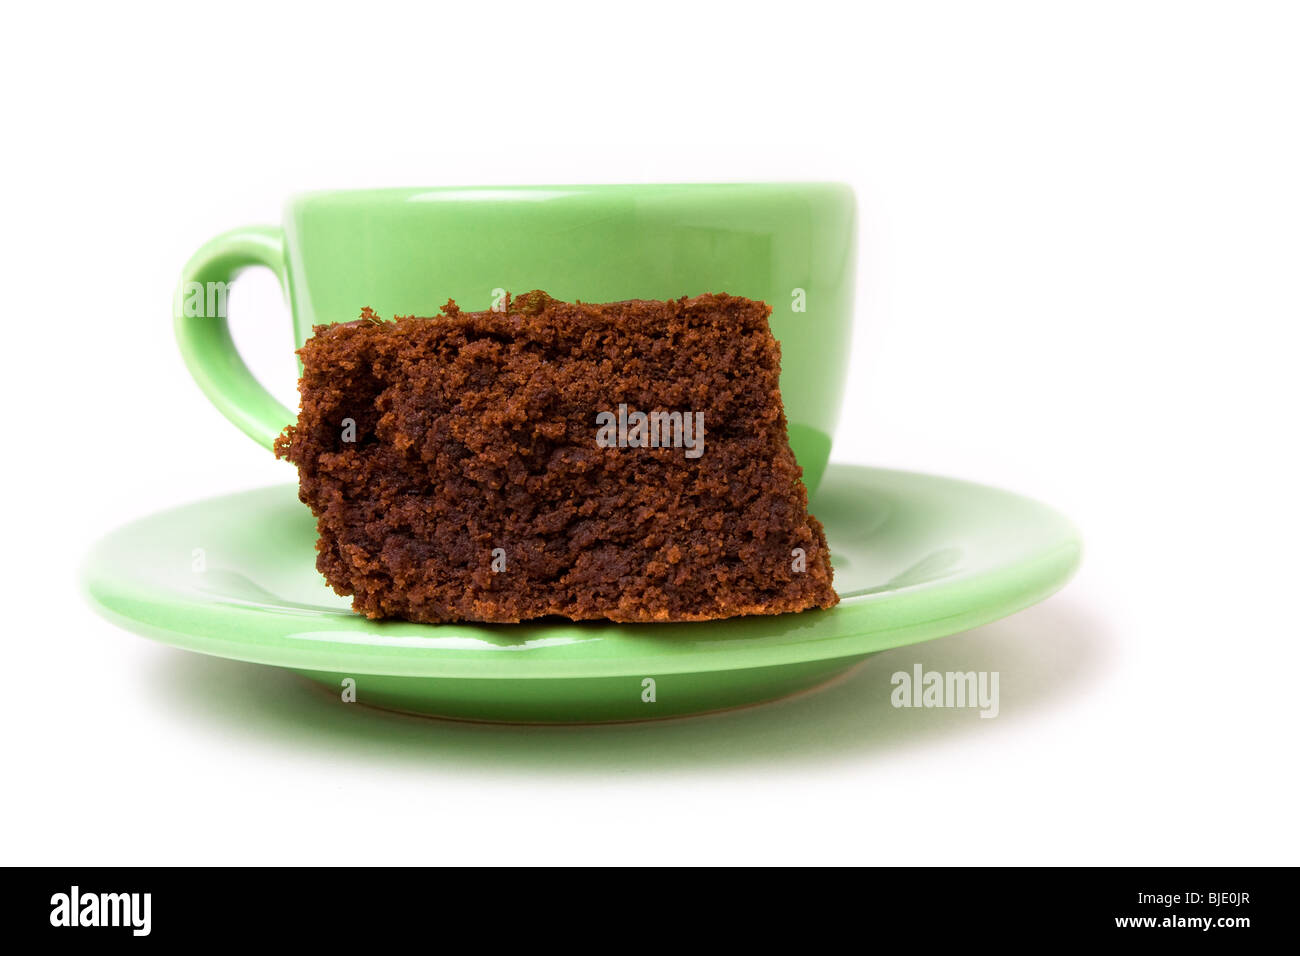 Chocolate fudge brownie with cup of espresso coffee - Stock Image